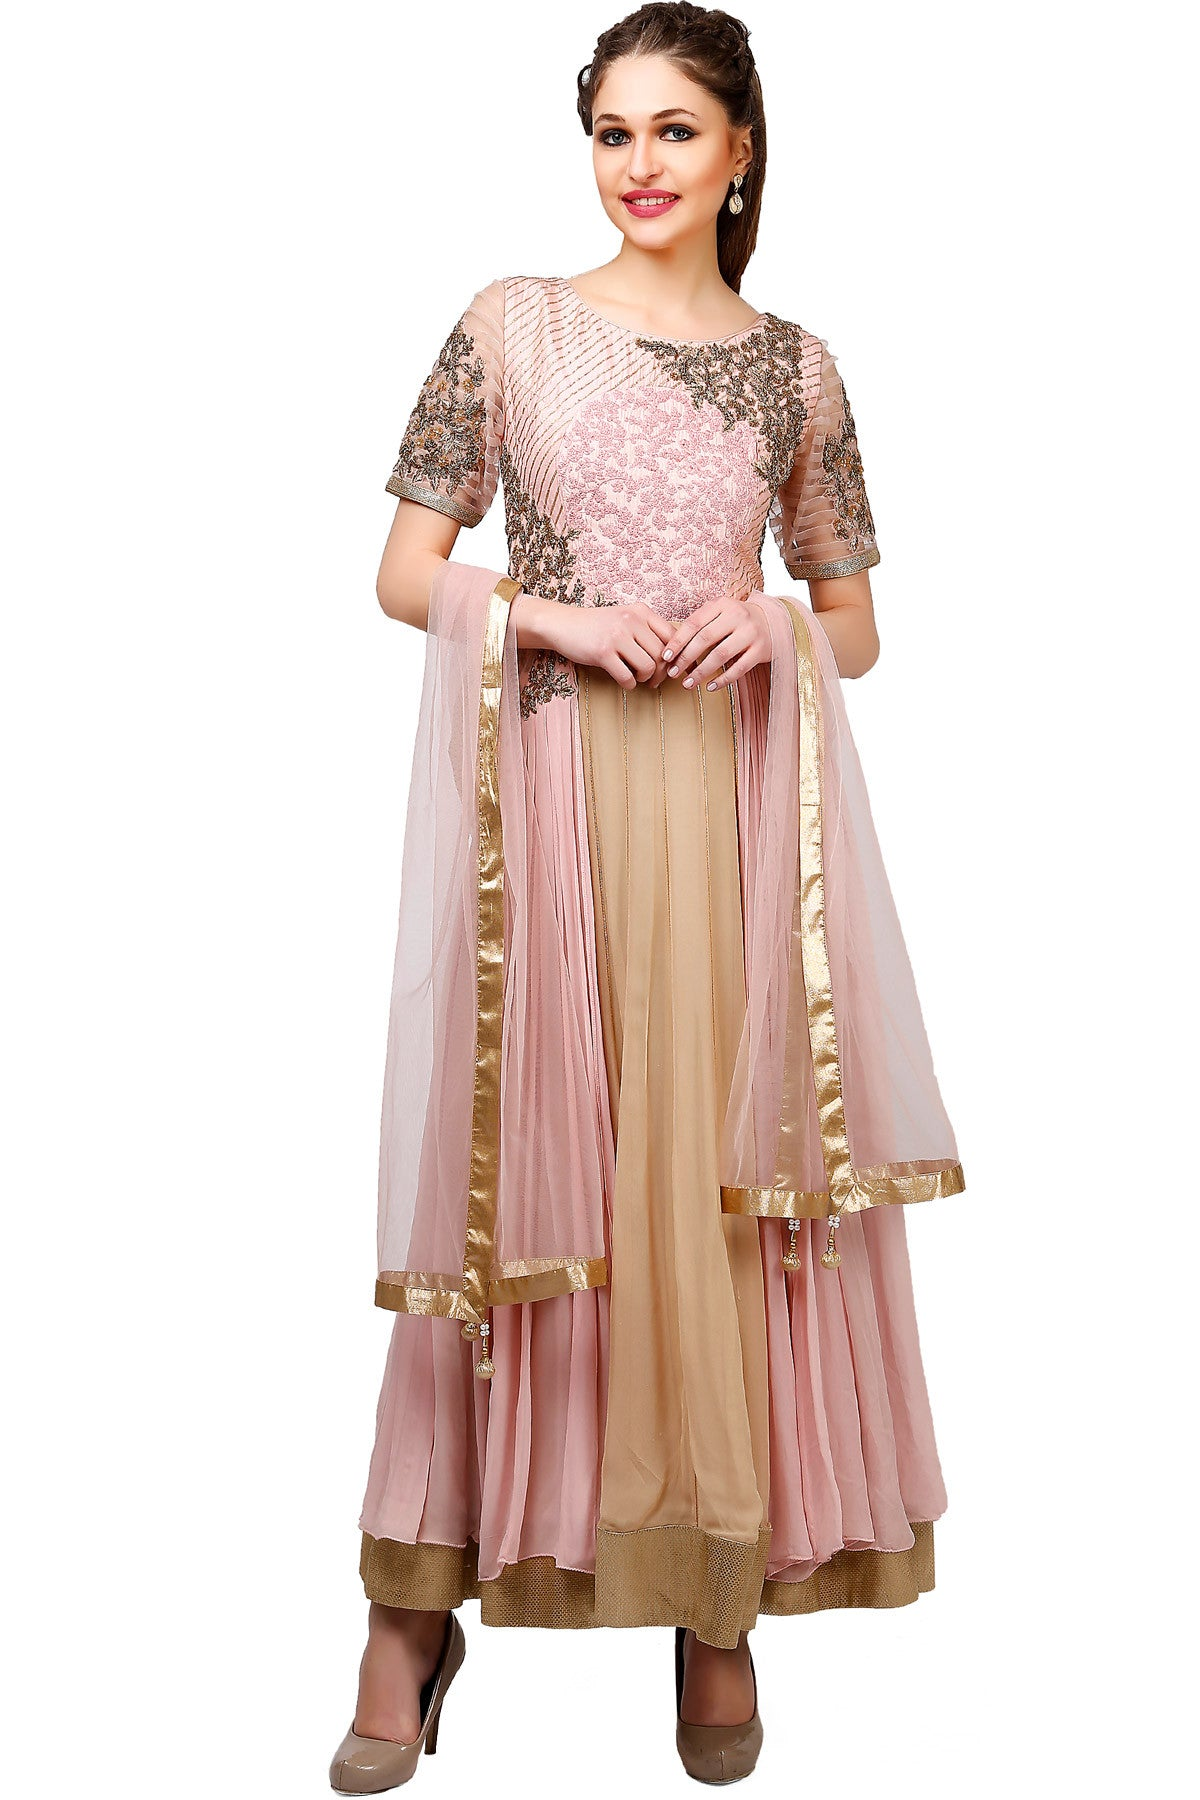 Buy Beige and Pink Anarkali Suit With Floral Embroidery Online at indi.fashion